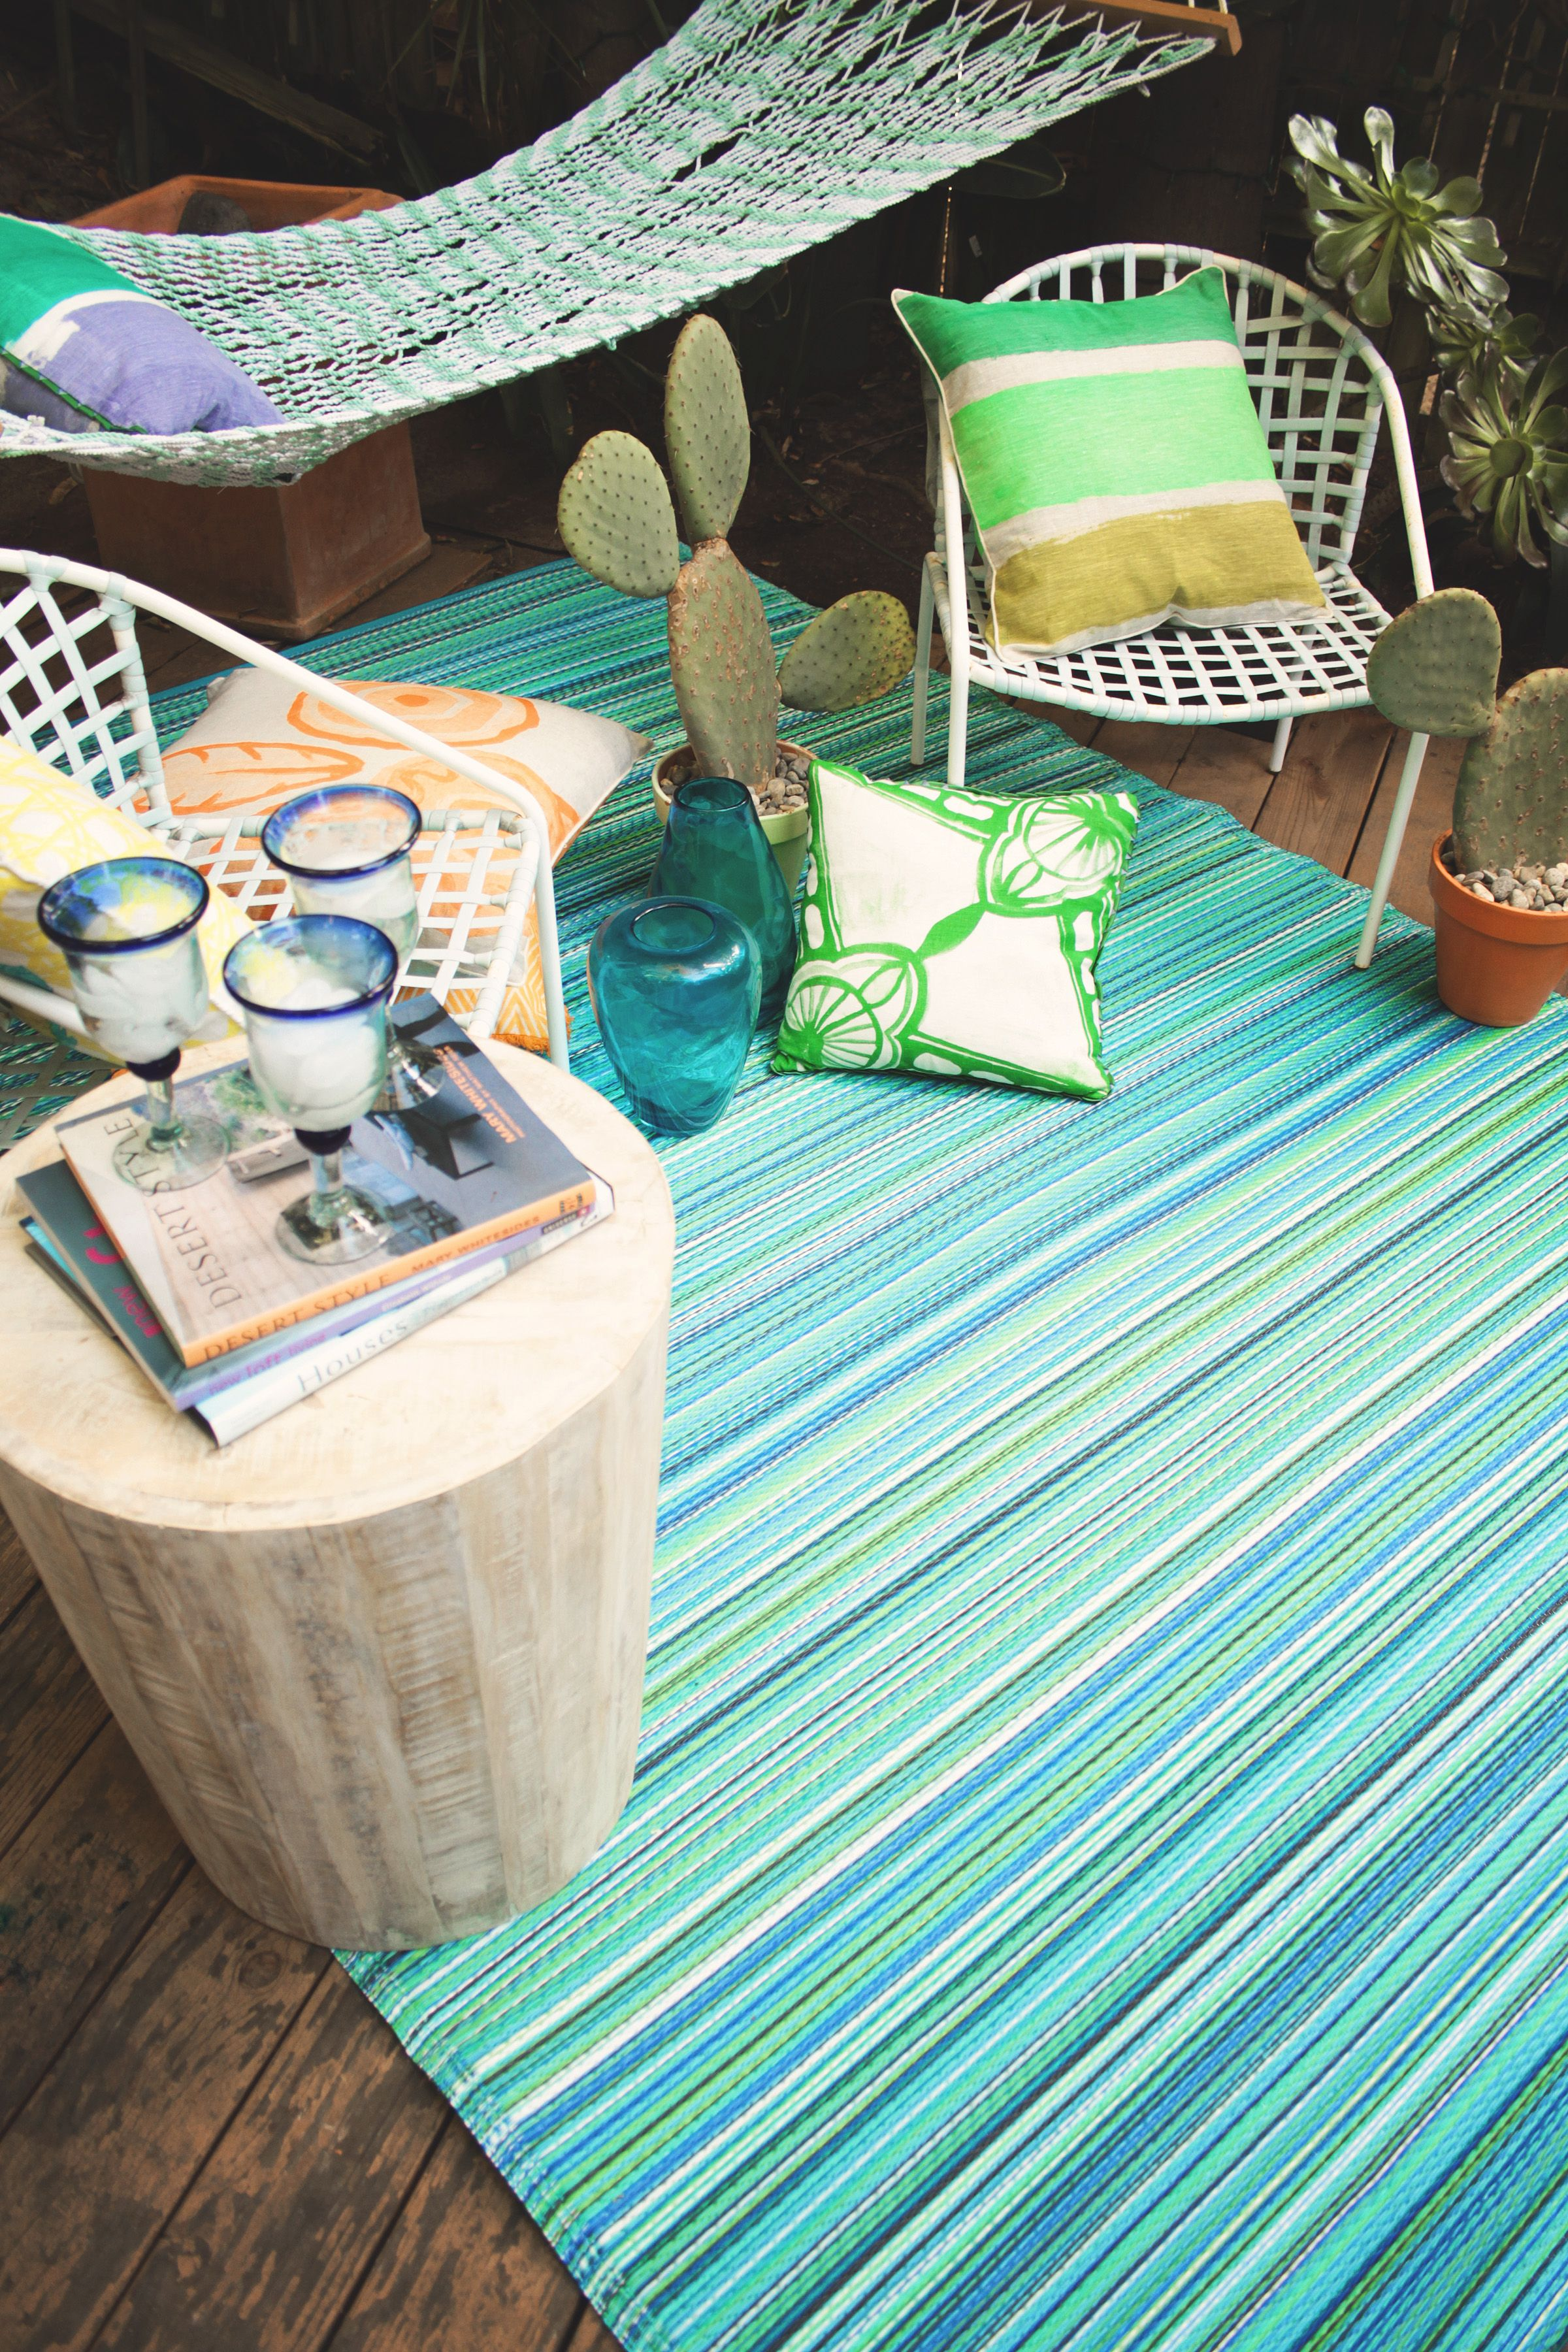 How To Spruce Up A Small Deck Or Yard